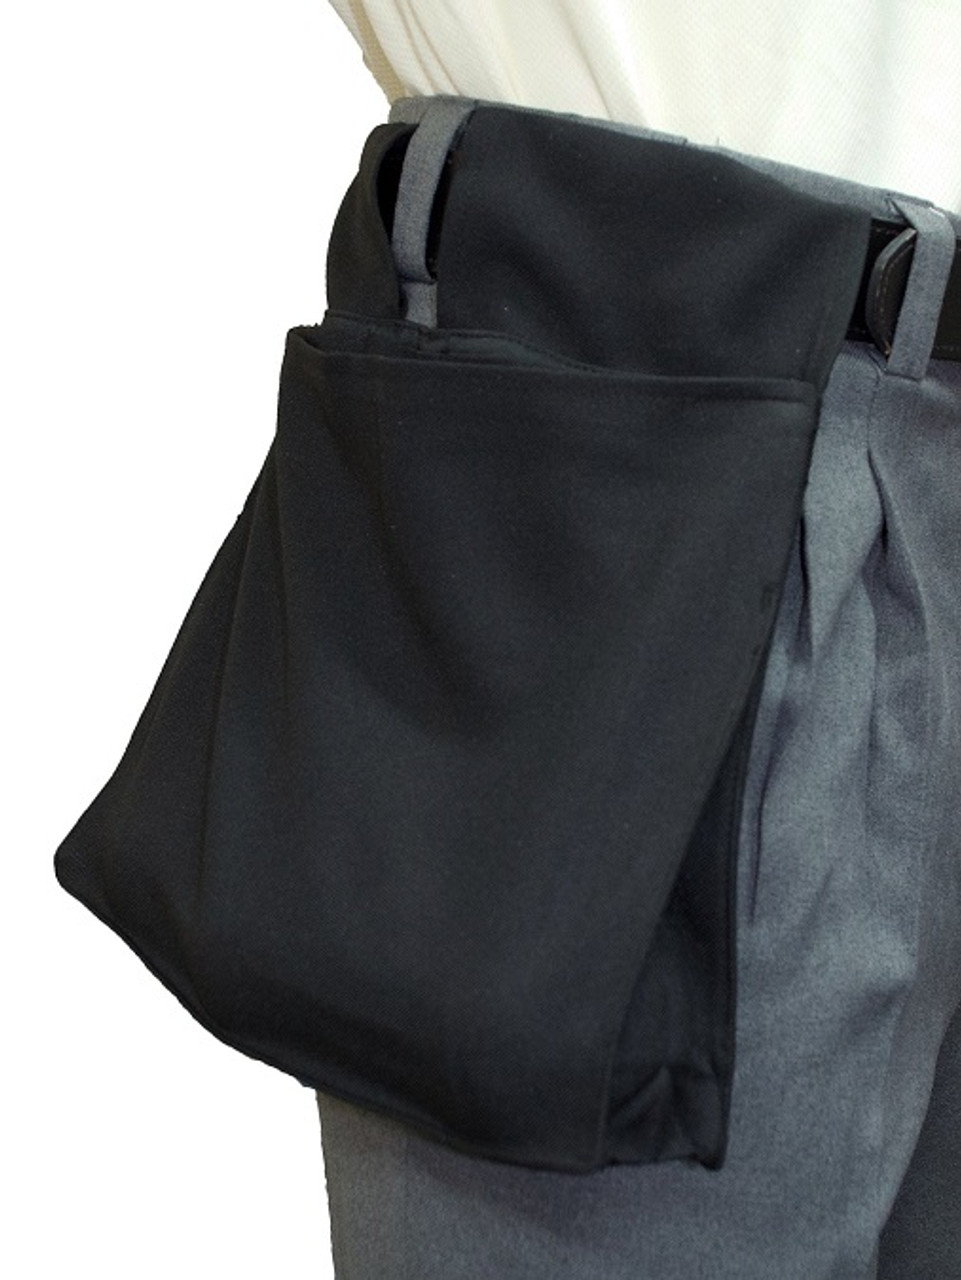 Smitty Black Deluxe Ball Bag w/ Expandable Insert